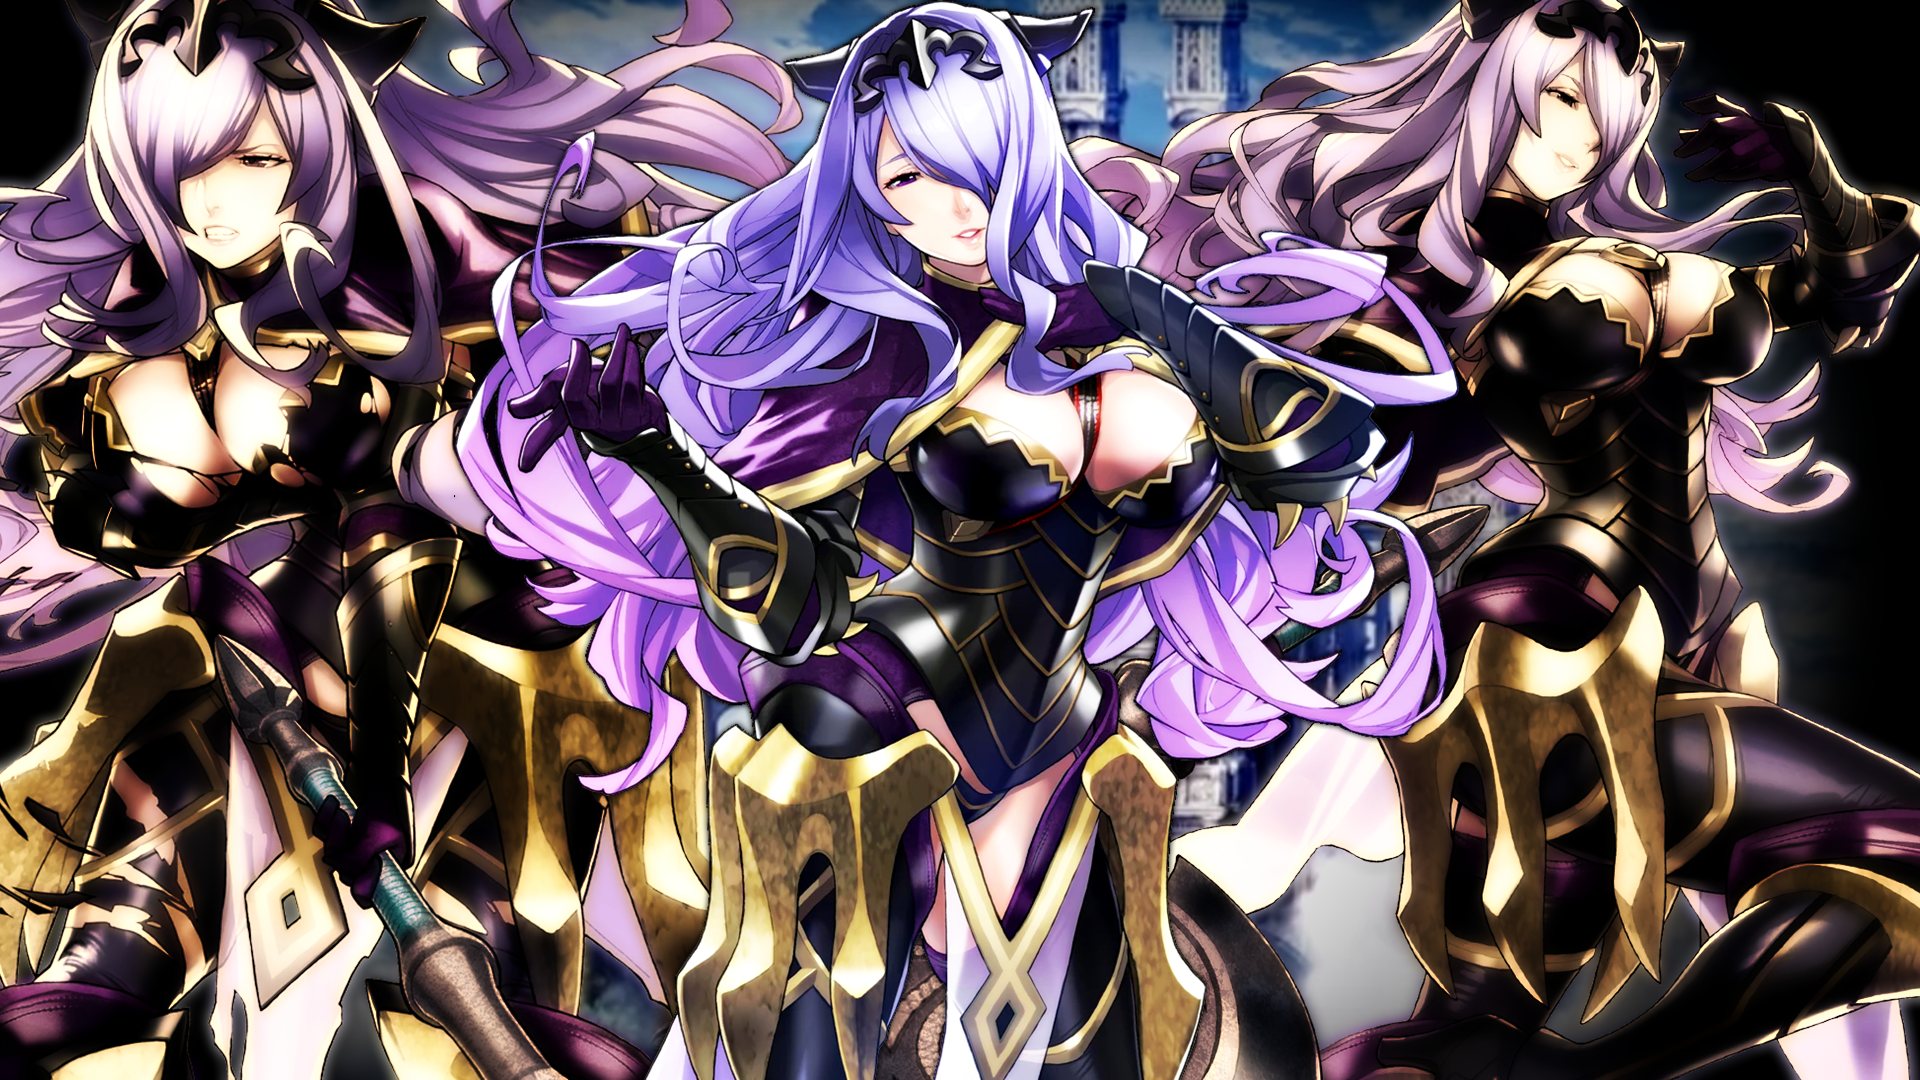 Fire emblem heroes camilla wallpaper by auroramaster on for Fe camilla